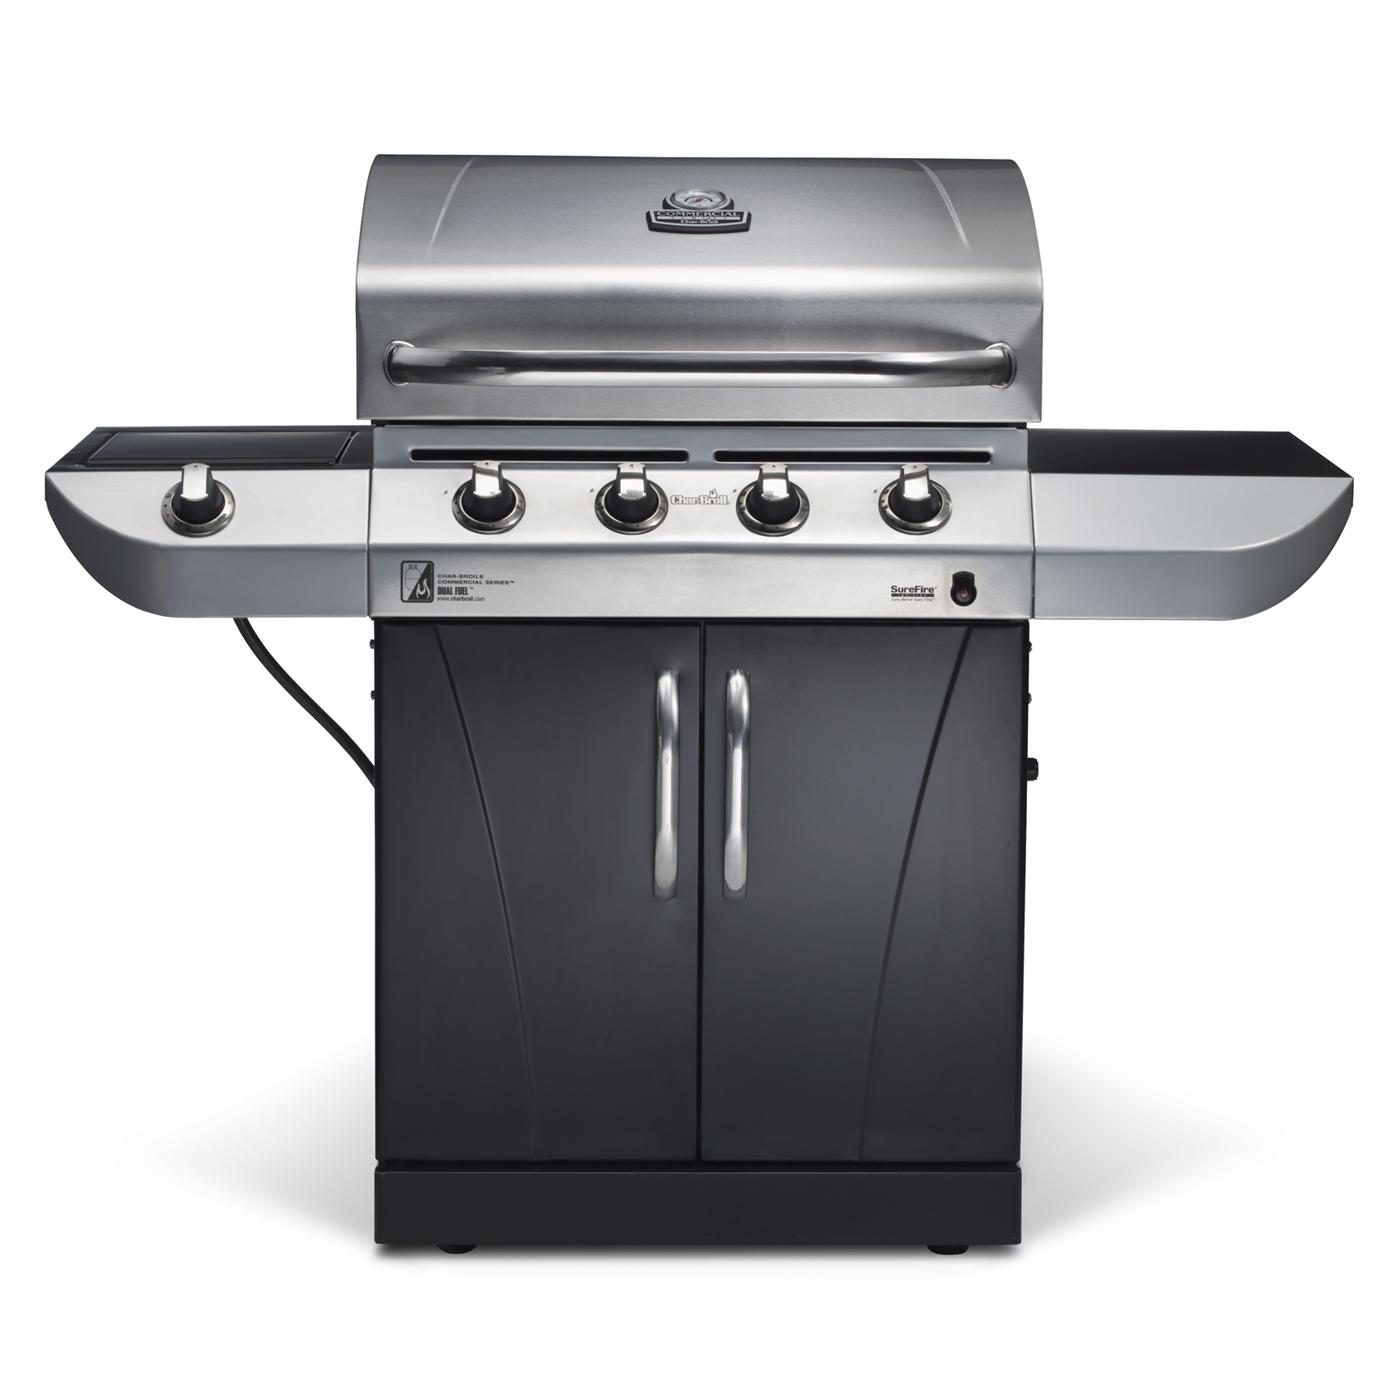 Char broil commercial series gas grill - Help For Model 463244011 Commercial Series 500 4 Burner Gas Grill